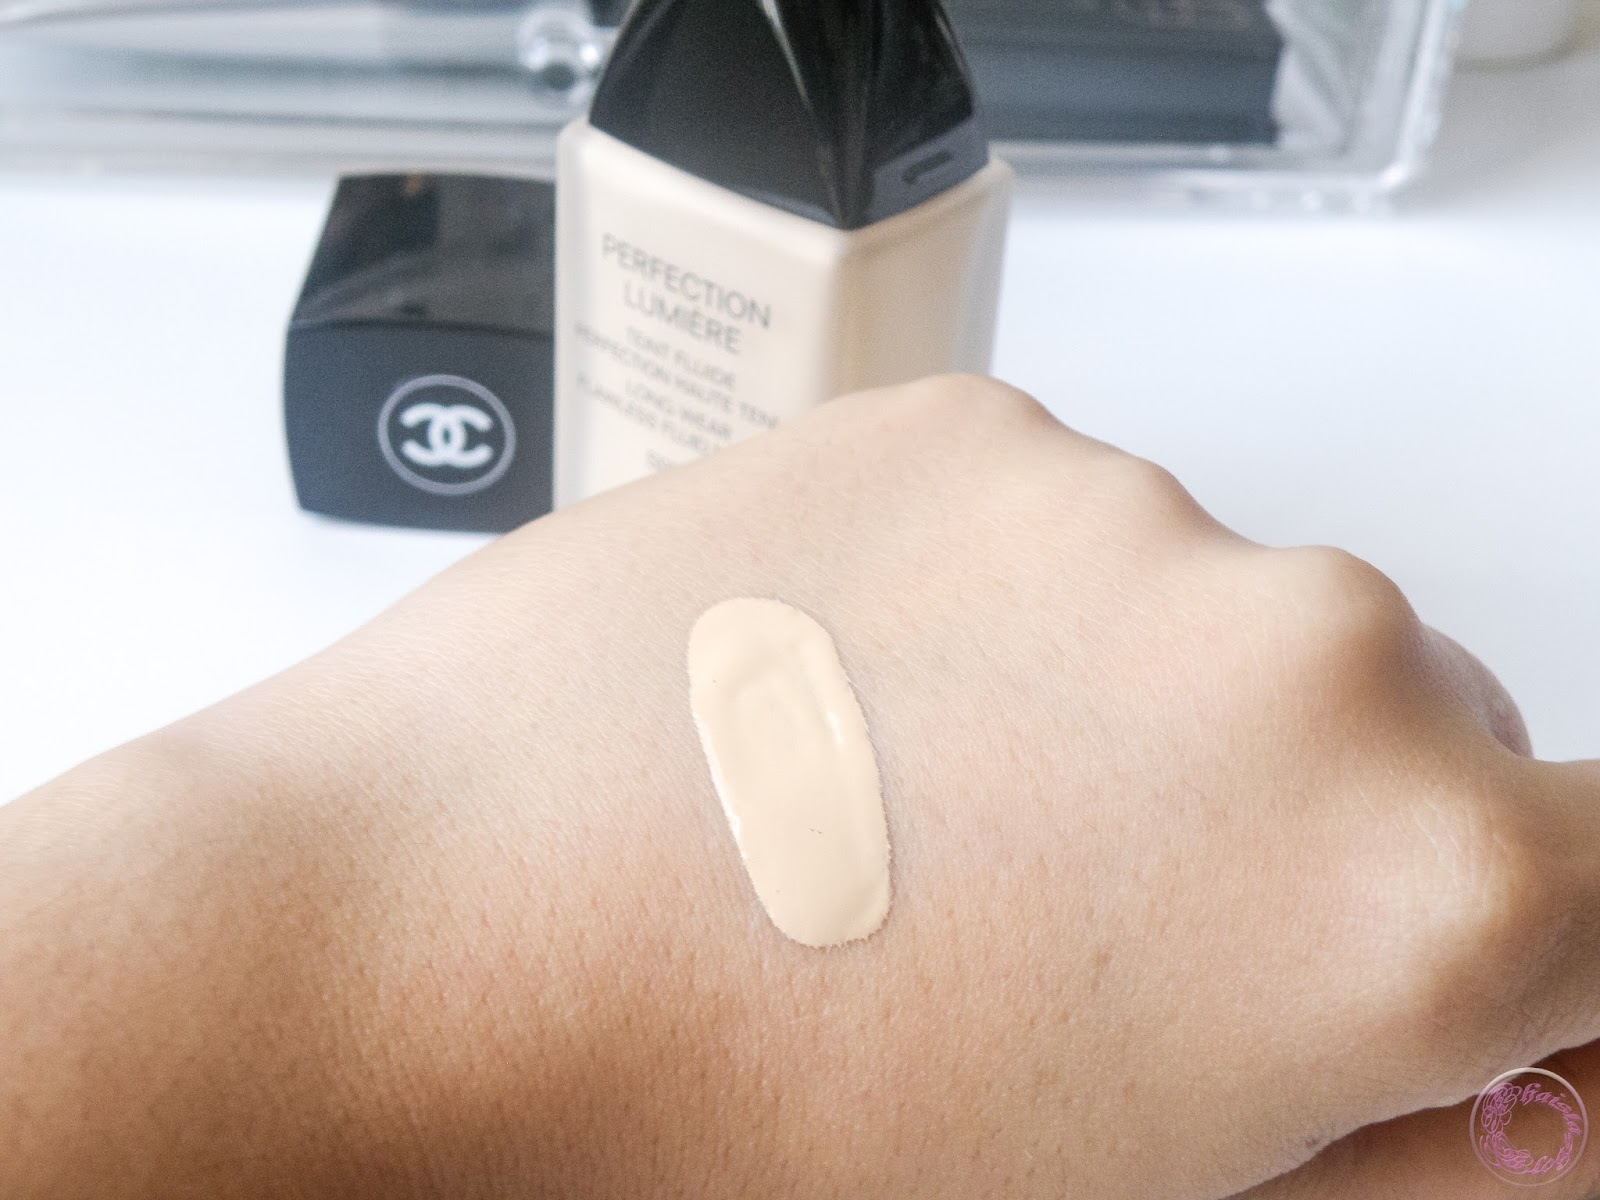 All the reviews I read about Chanel foundations, most of these missed the point that Chanel foundations oxidise and can get darker up to two shades.